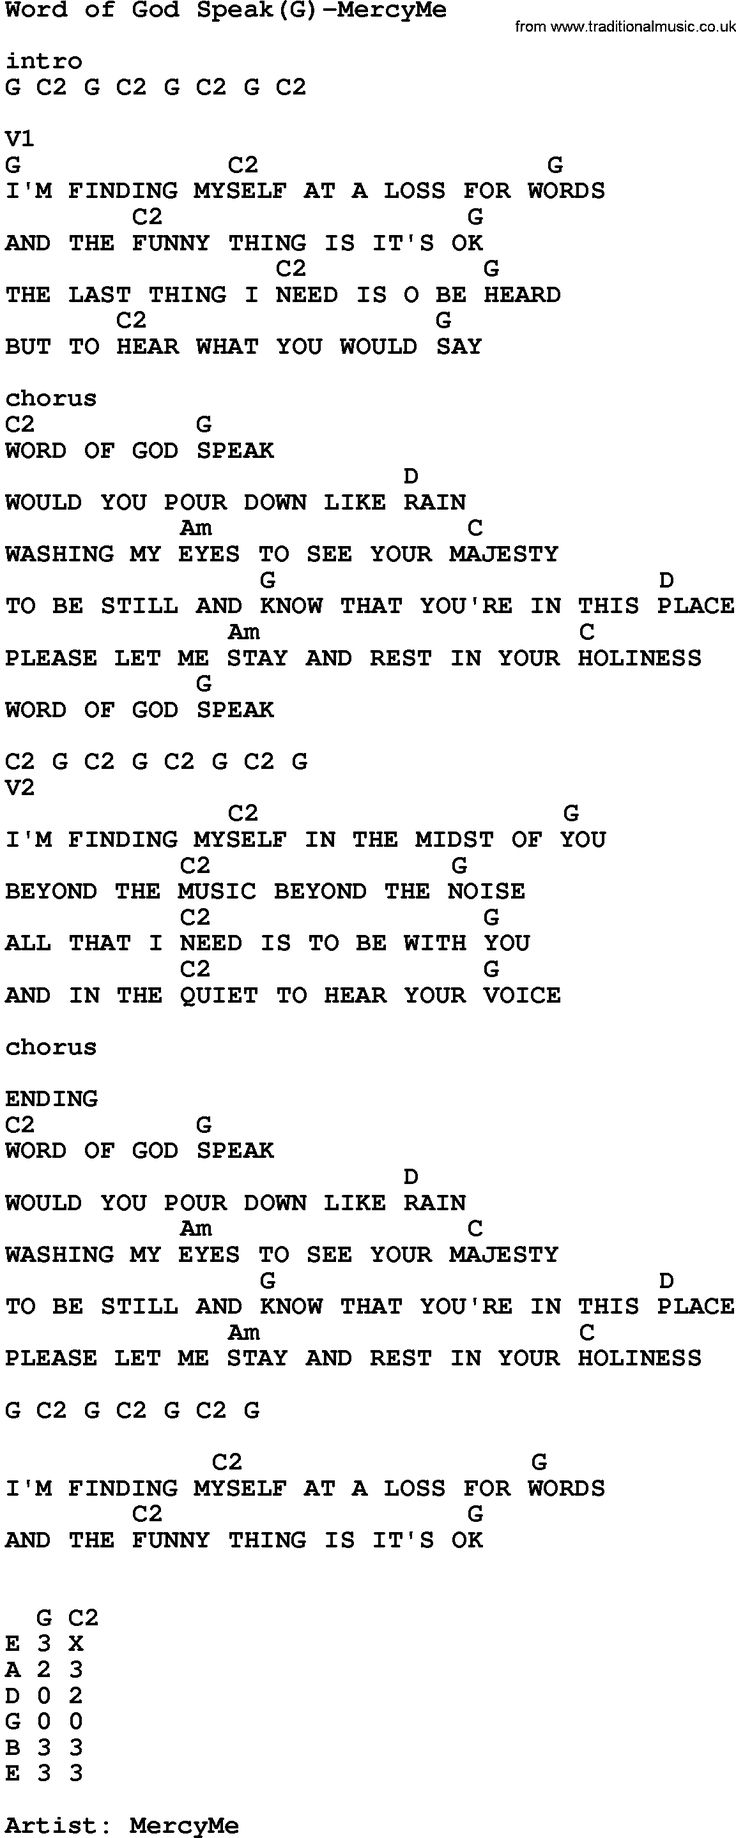 Pop song guitar chords choice image guitar chords examples yahweh guitar chords images guitar chords examples i will worship you in the beauty of holiness hexwebz Image collections